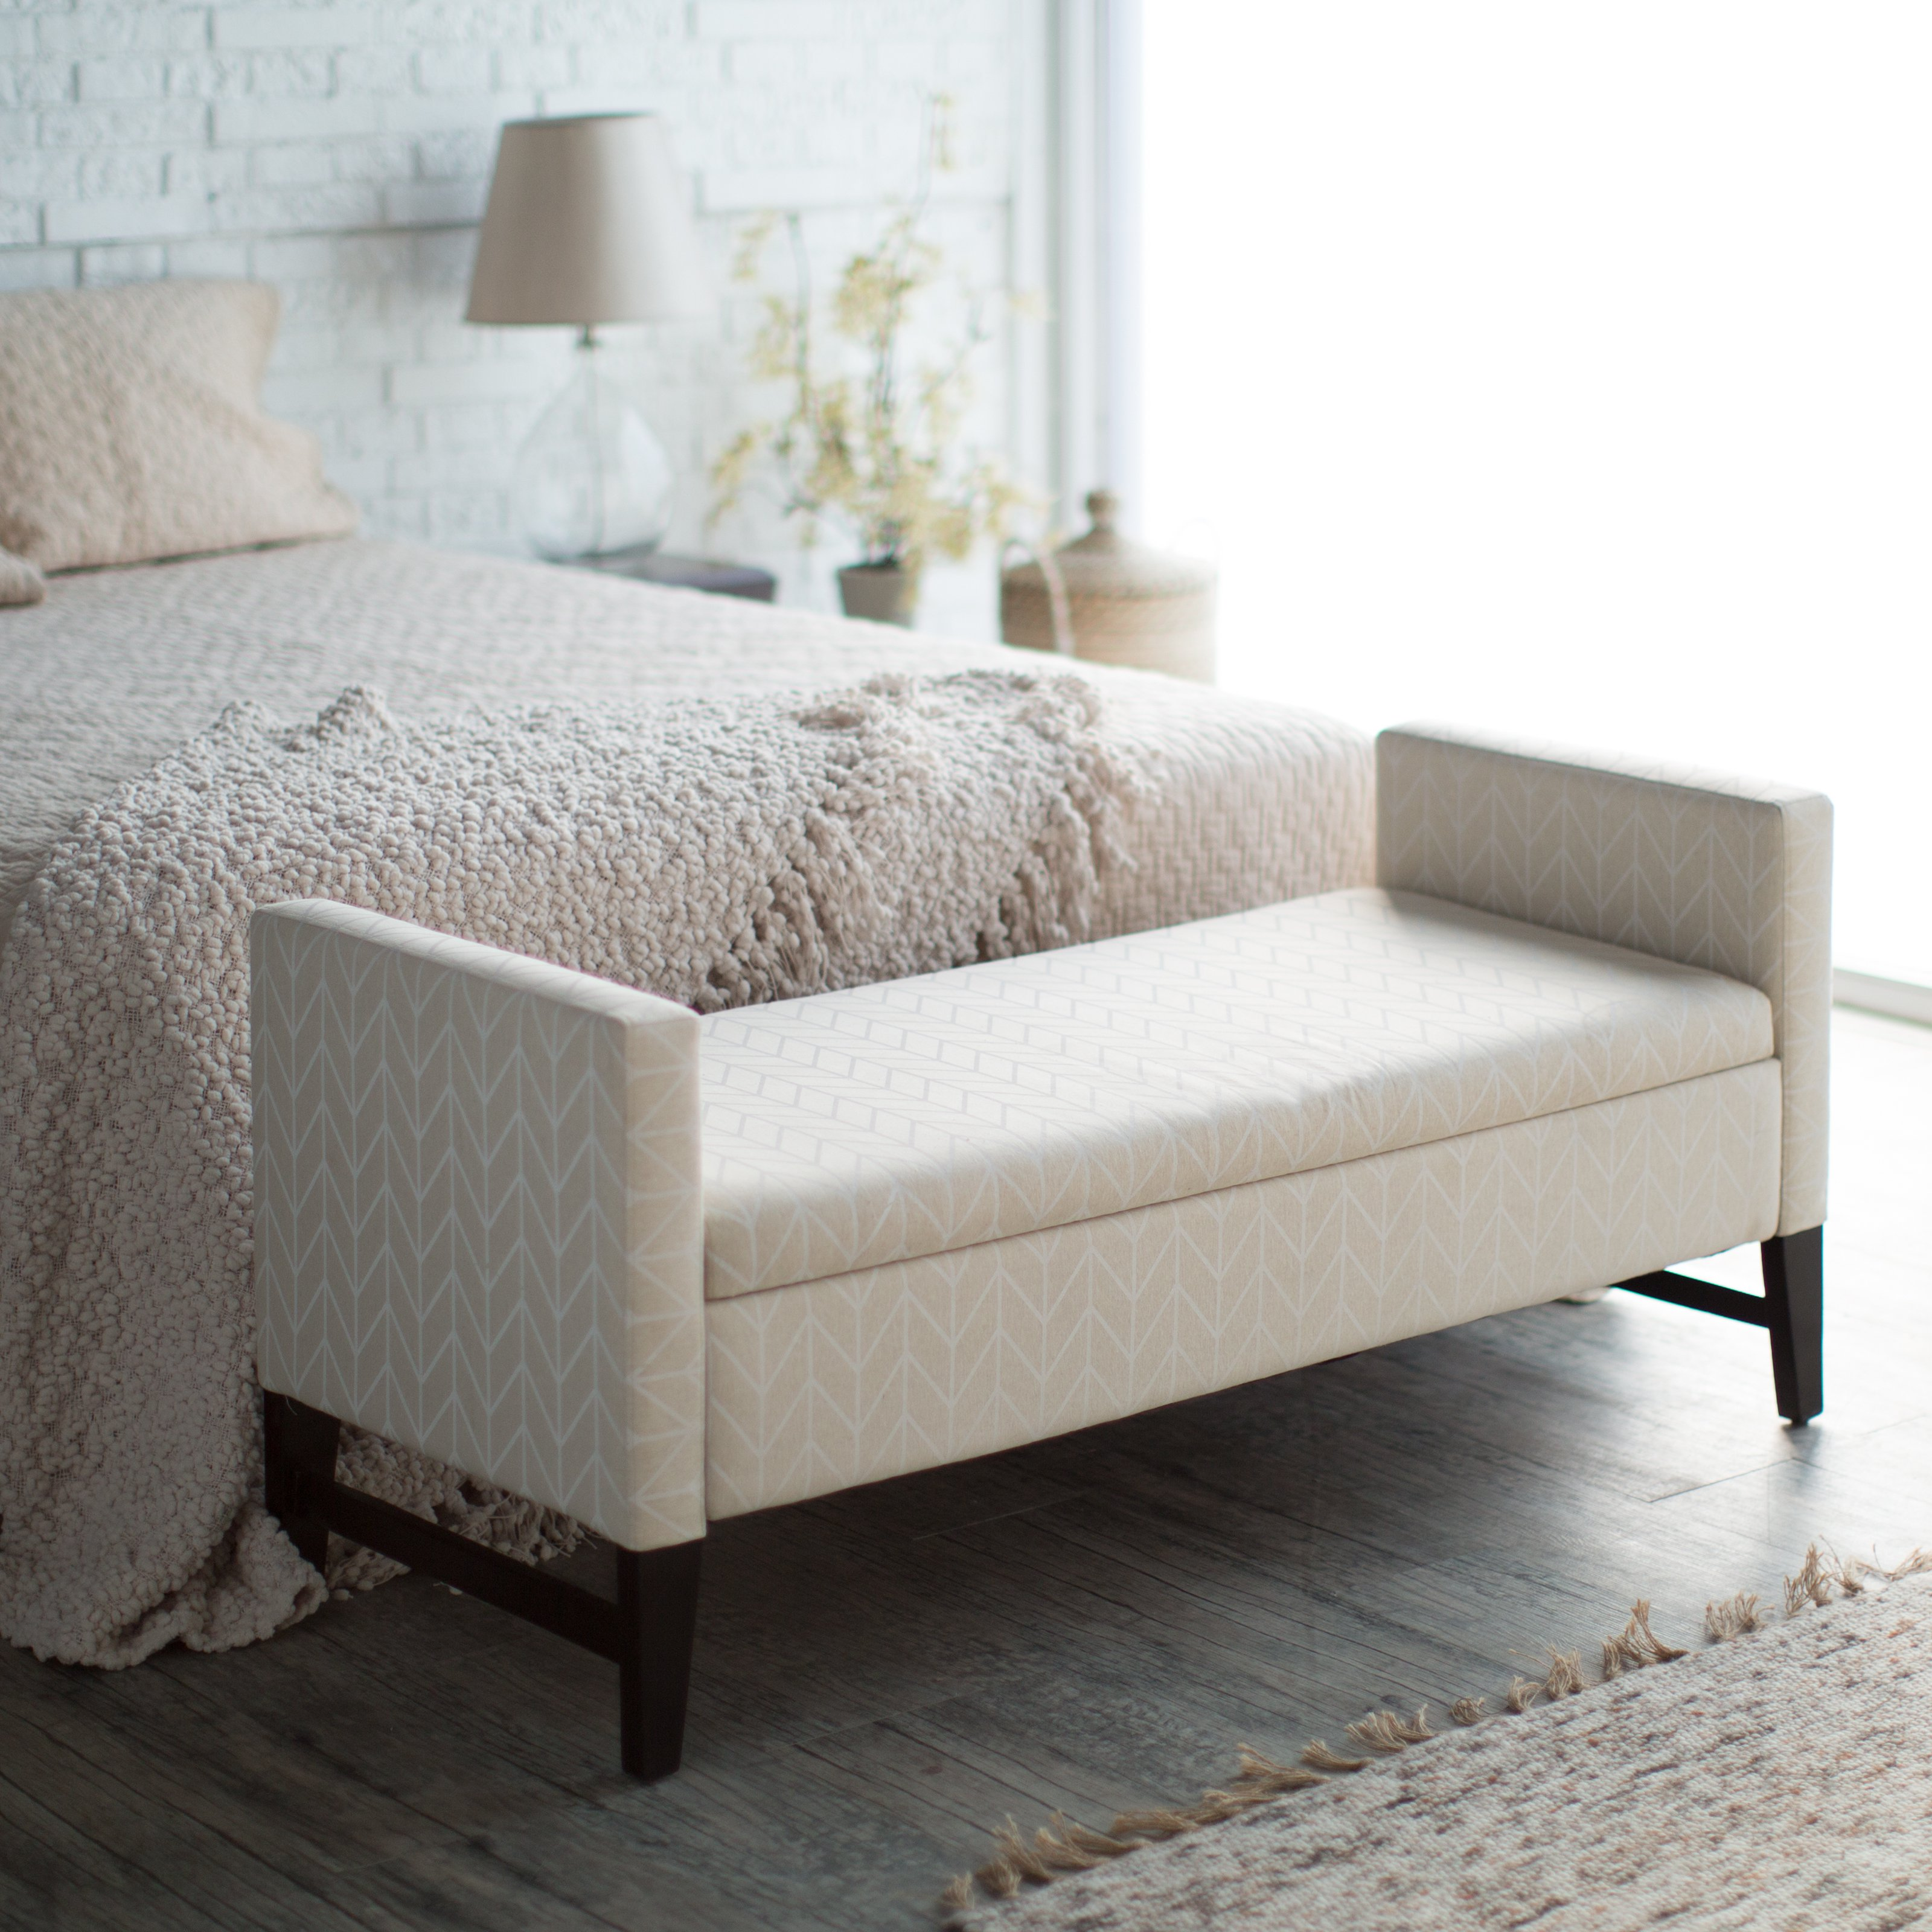 Modern End Of Bed Storage Bench With Stunning Motif Decorated In Bedroom Comfy Bedding Plus